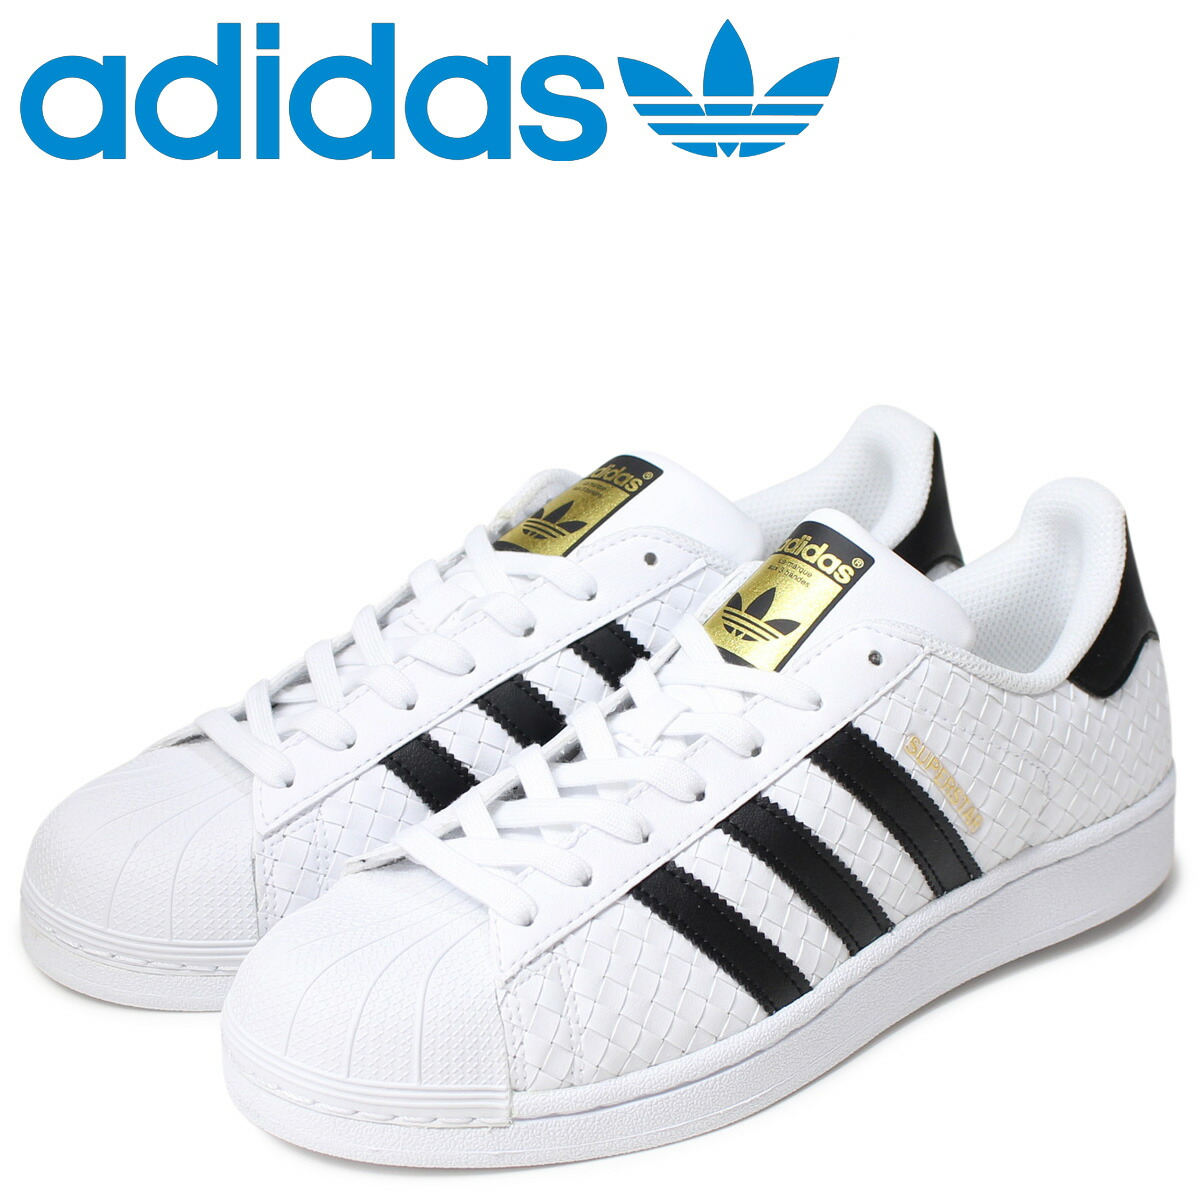 Adidas superstar adidas Originals men sneakers SUPERSTAR BB1172 shoes white